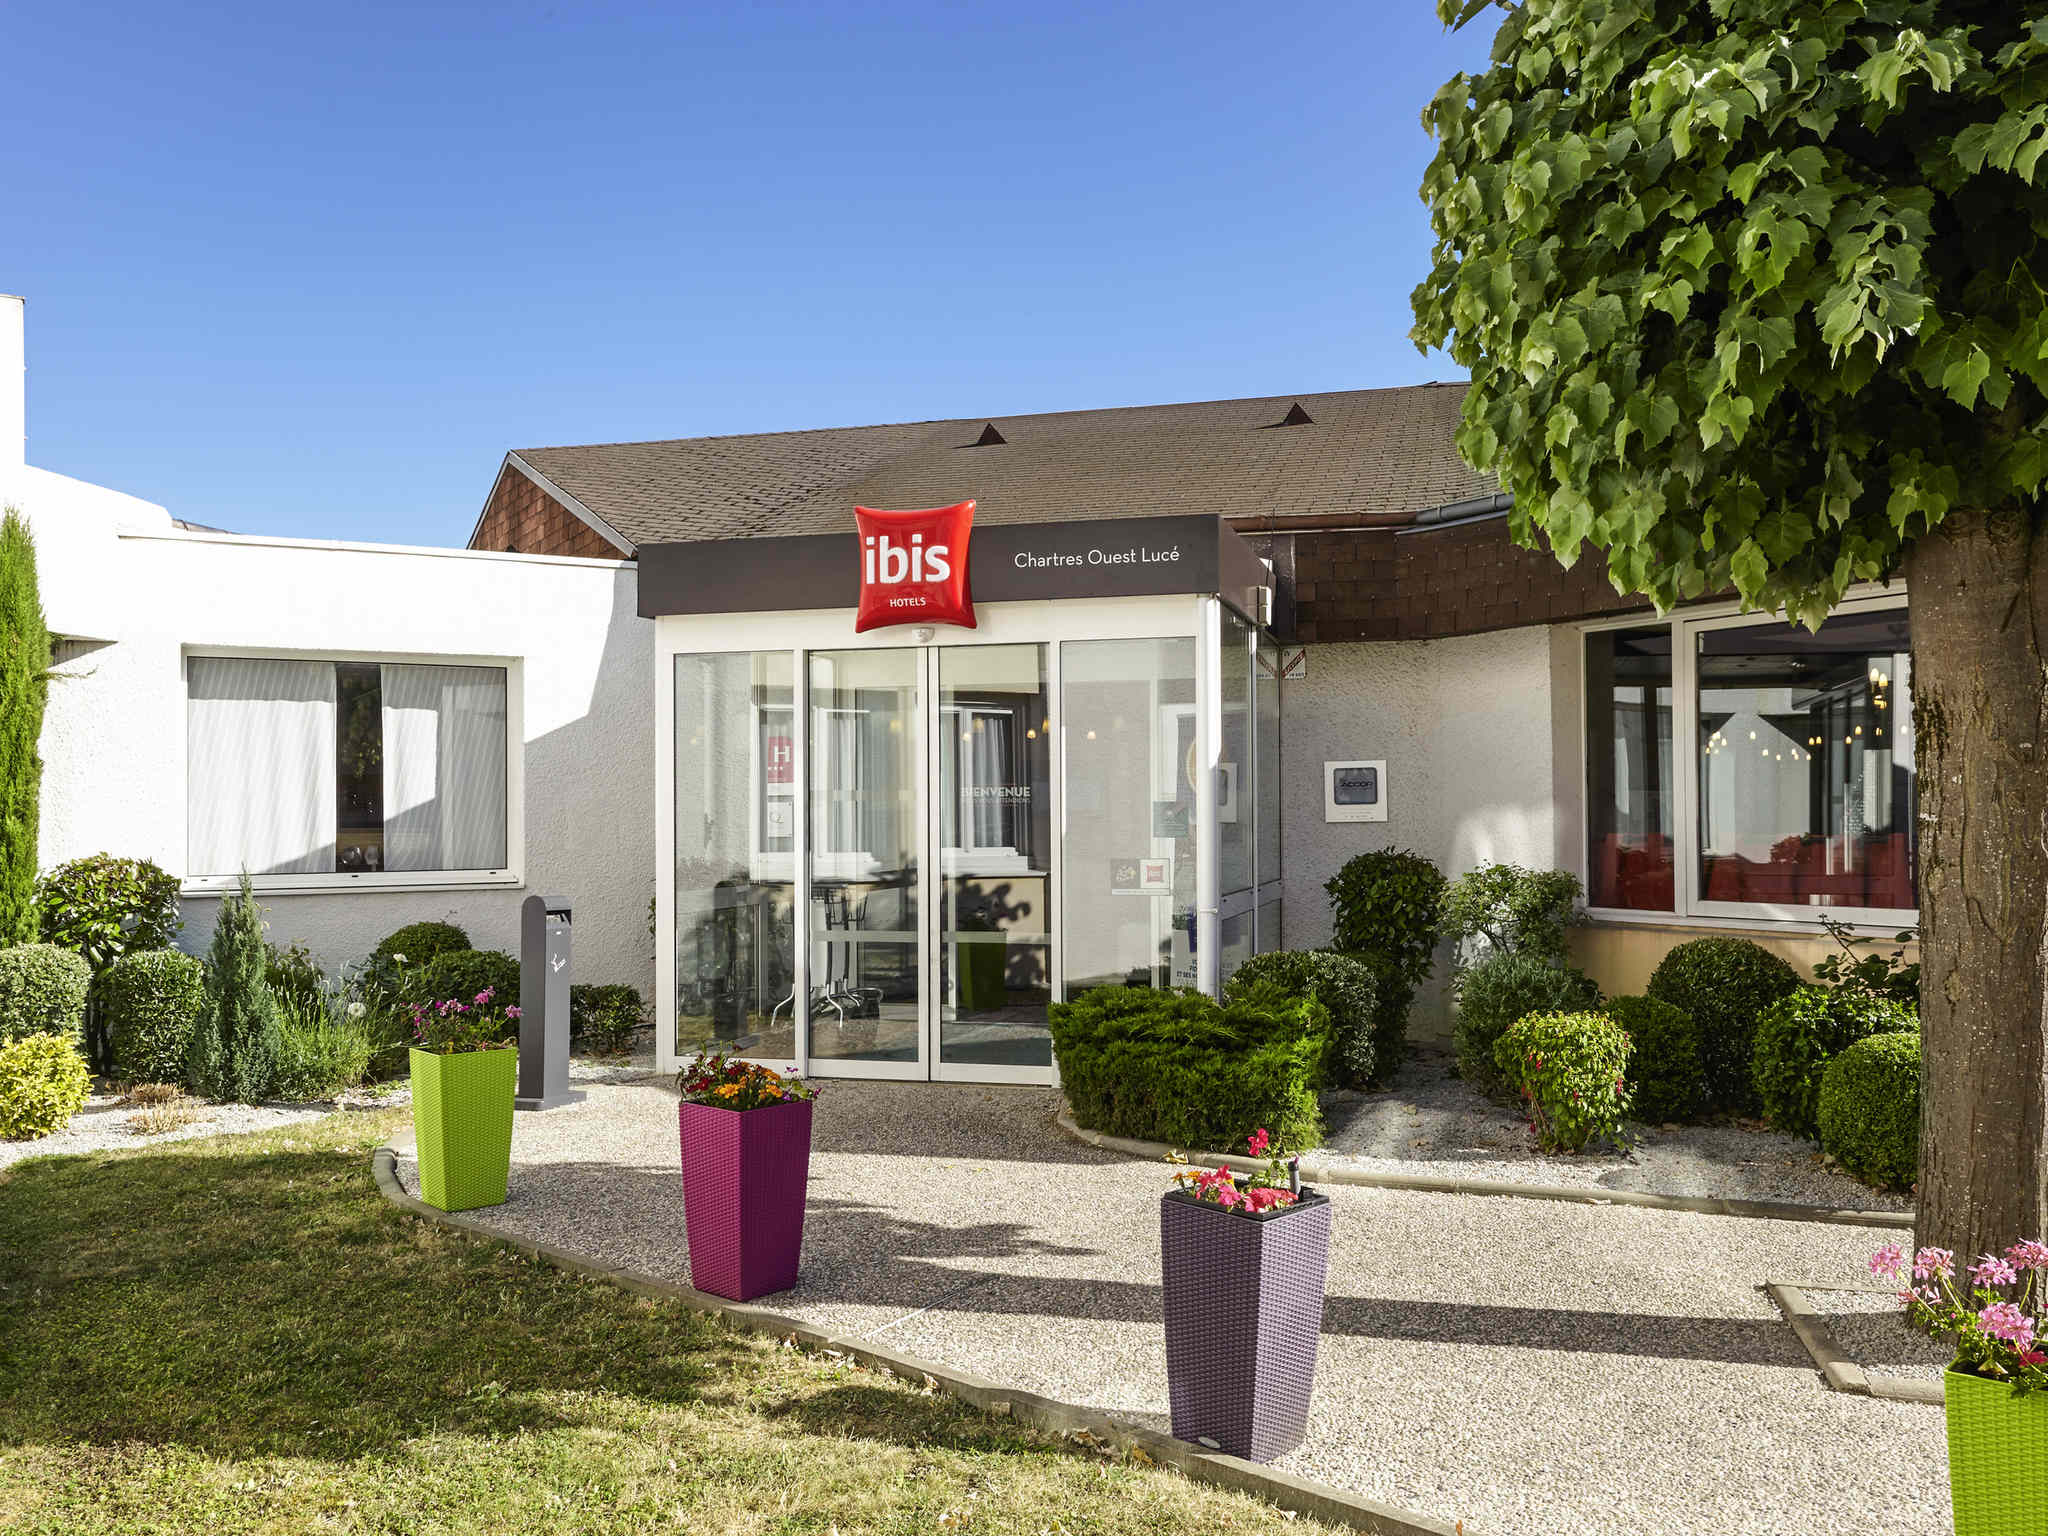 Hotel - ibis Chartres Ouest Lucé